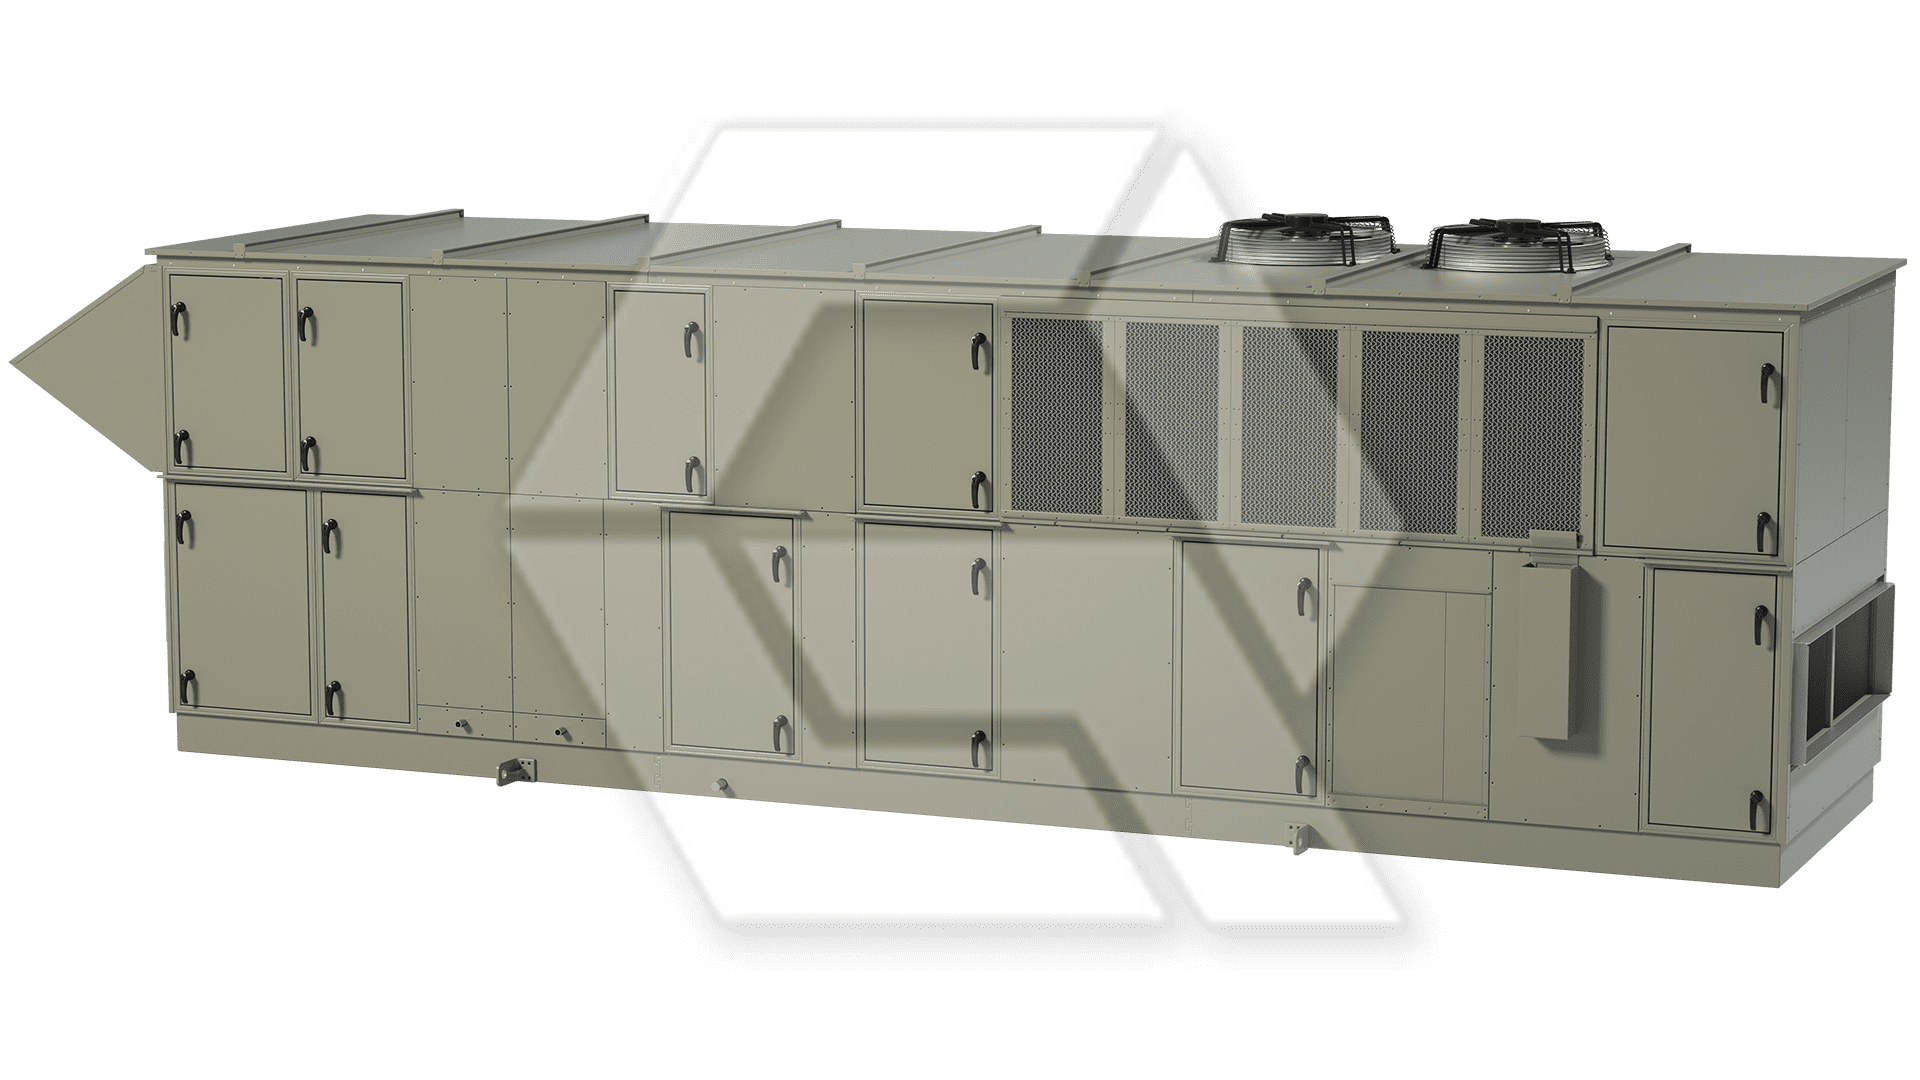 Innovent AHU 7879467-00020 - Pool Unit Closed View